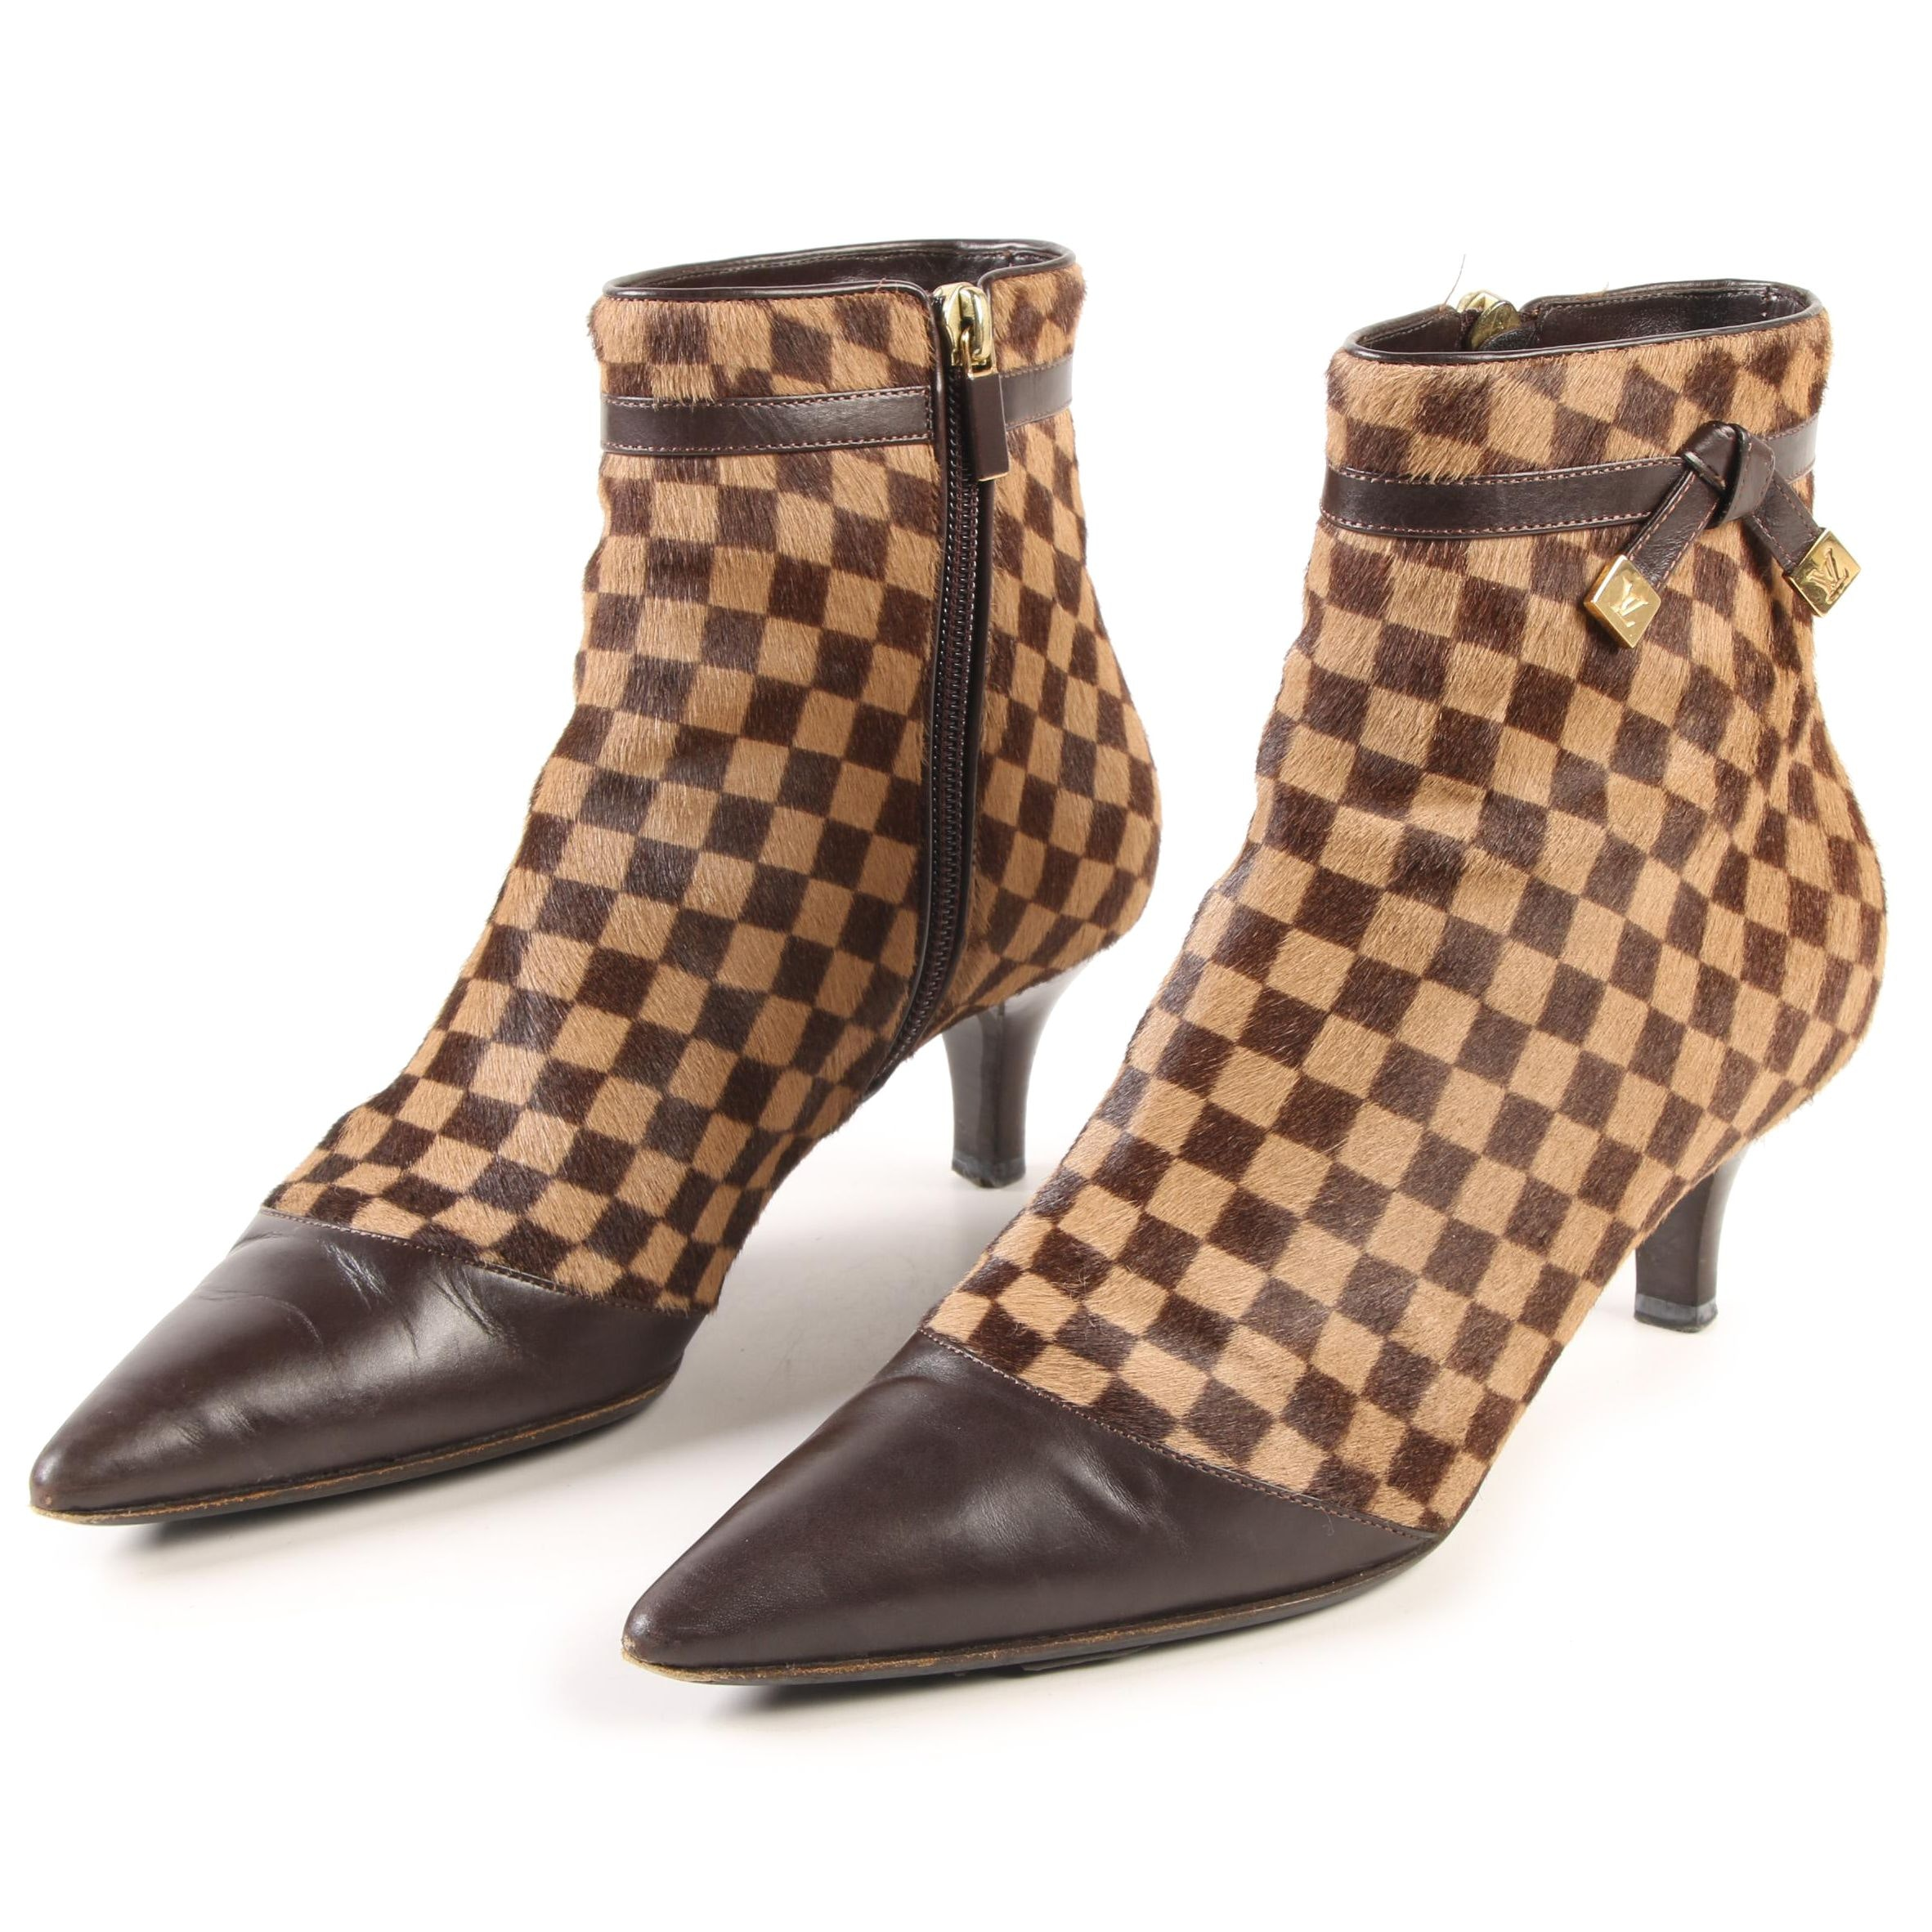 Louis Vuitton Paris Damier Sauvage Calf Hair Ankle Boots